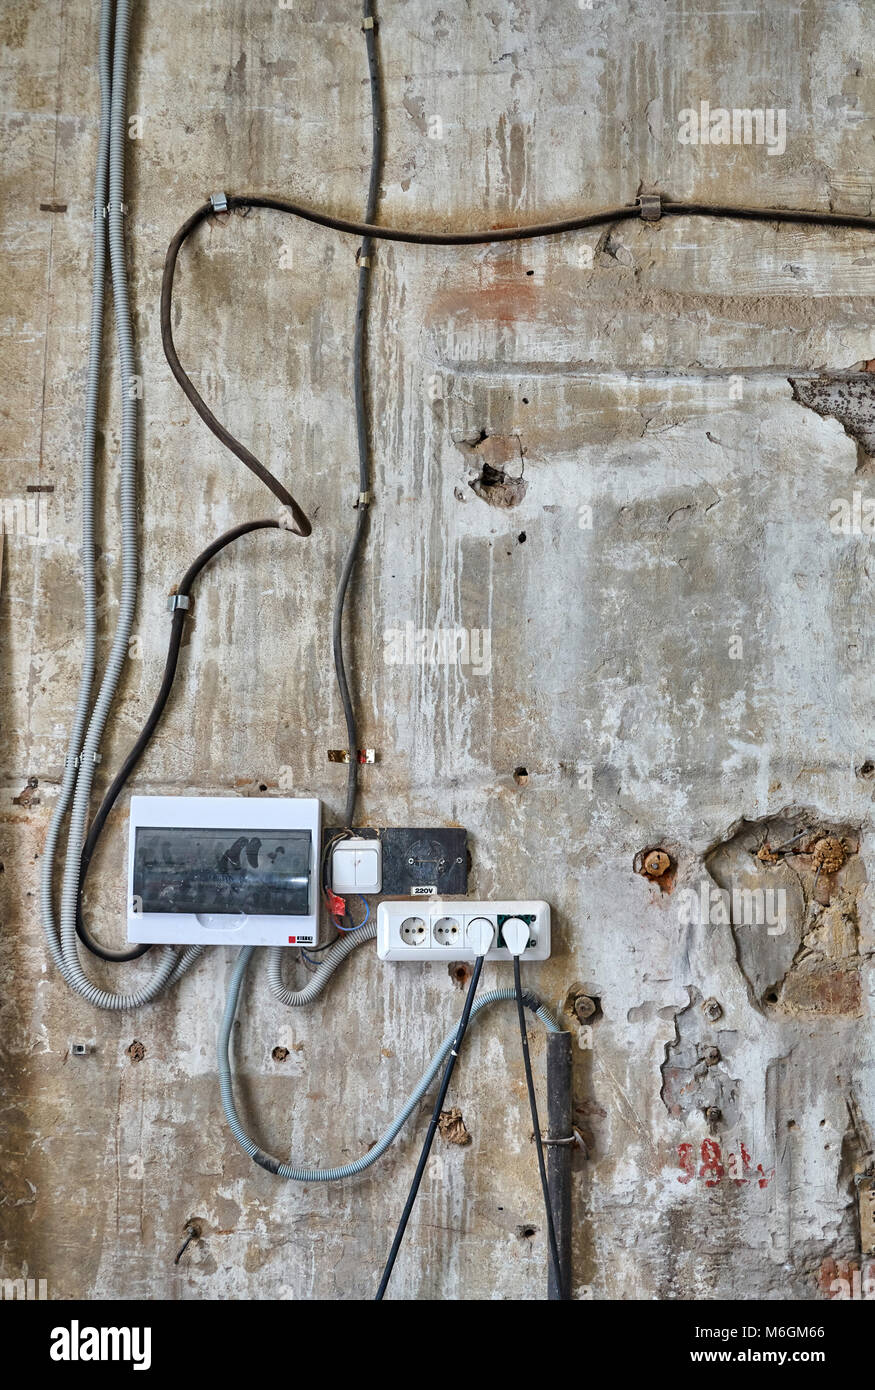 Old Wall Wiring Electrical Work Diagram Wire For Outlet Peeling With Accessories In The Workshop Stock Photo Rh Alamy Com Speaker Volume Control